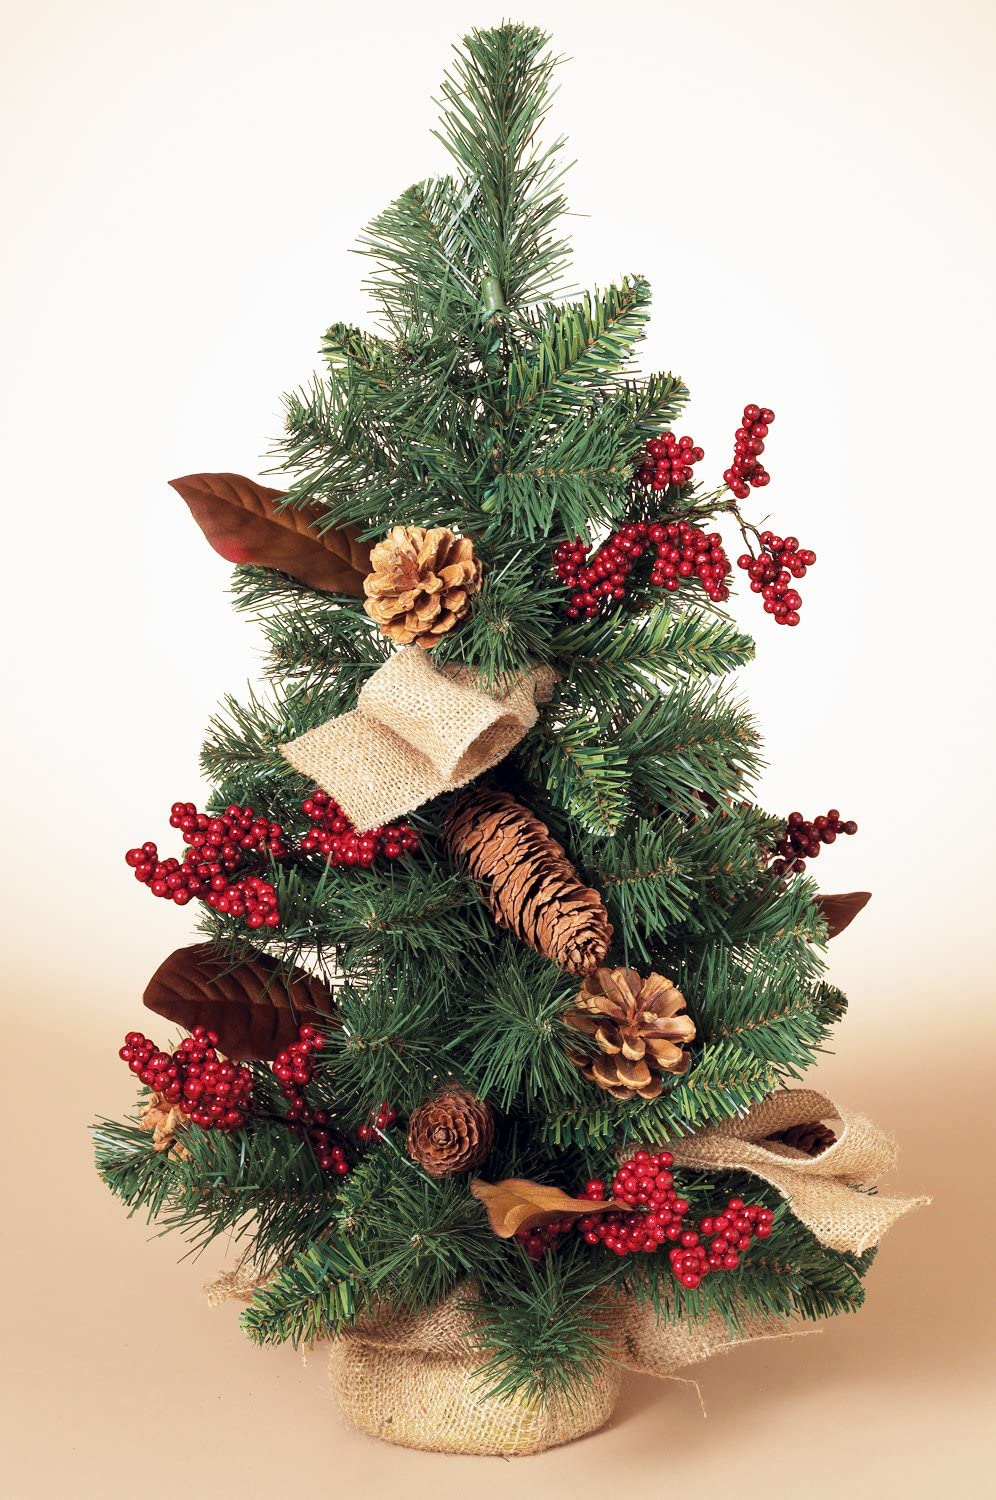 Amazon Com 24 Inch High Woodland Christmas Tree With Red Berries And Pine Cones Artificial Woodland Pine Tree Home Kitchen